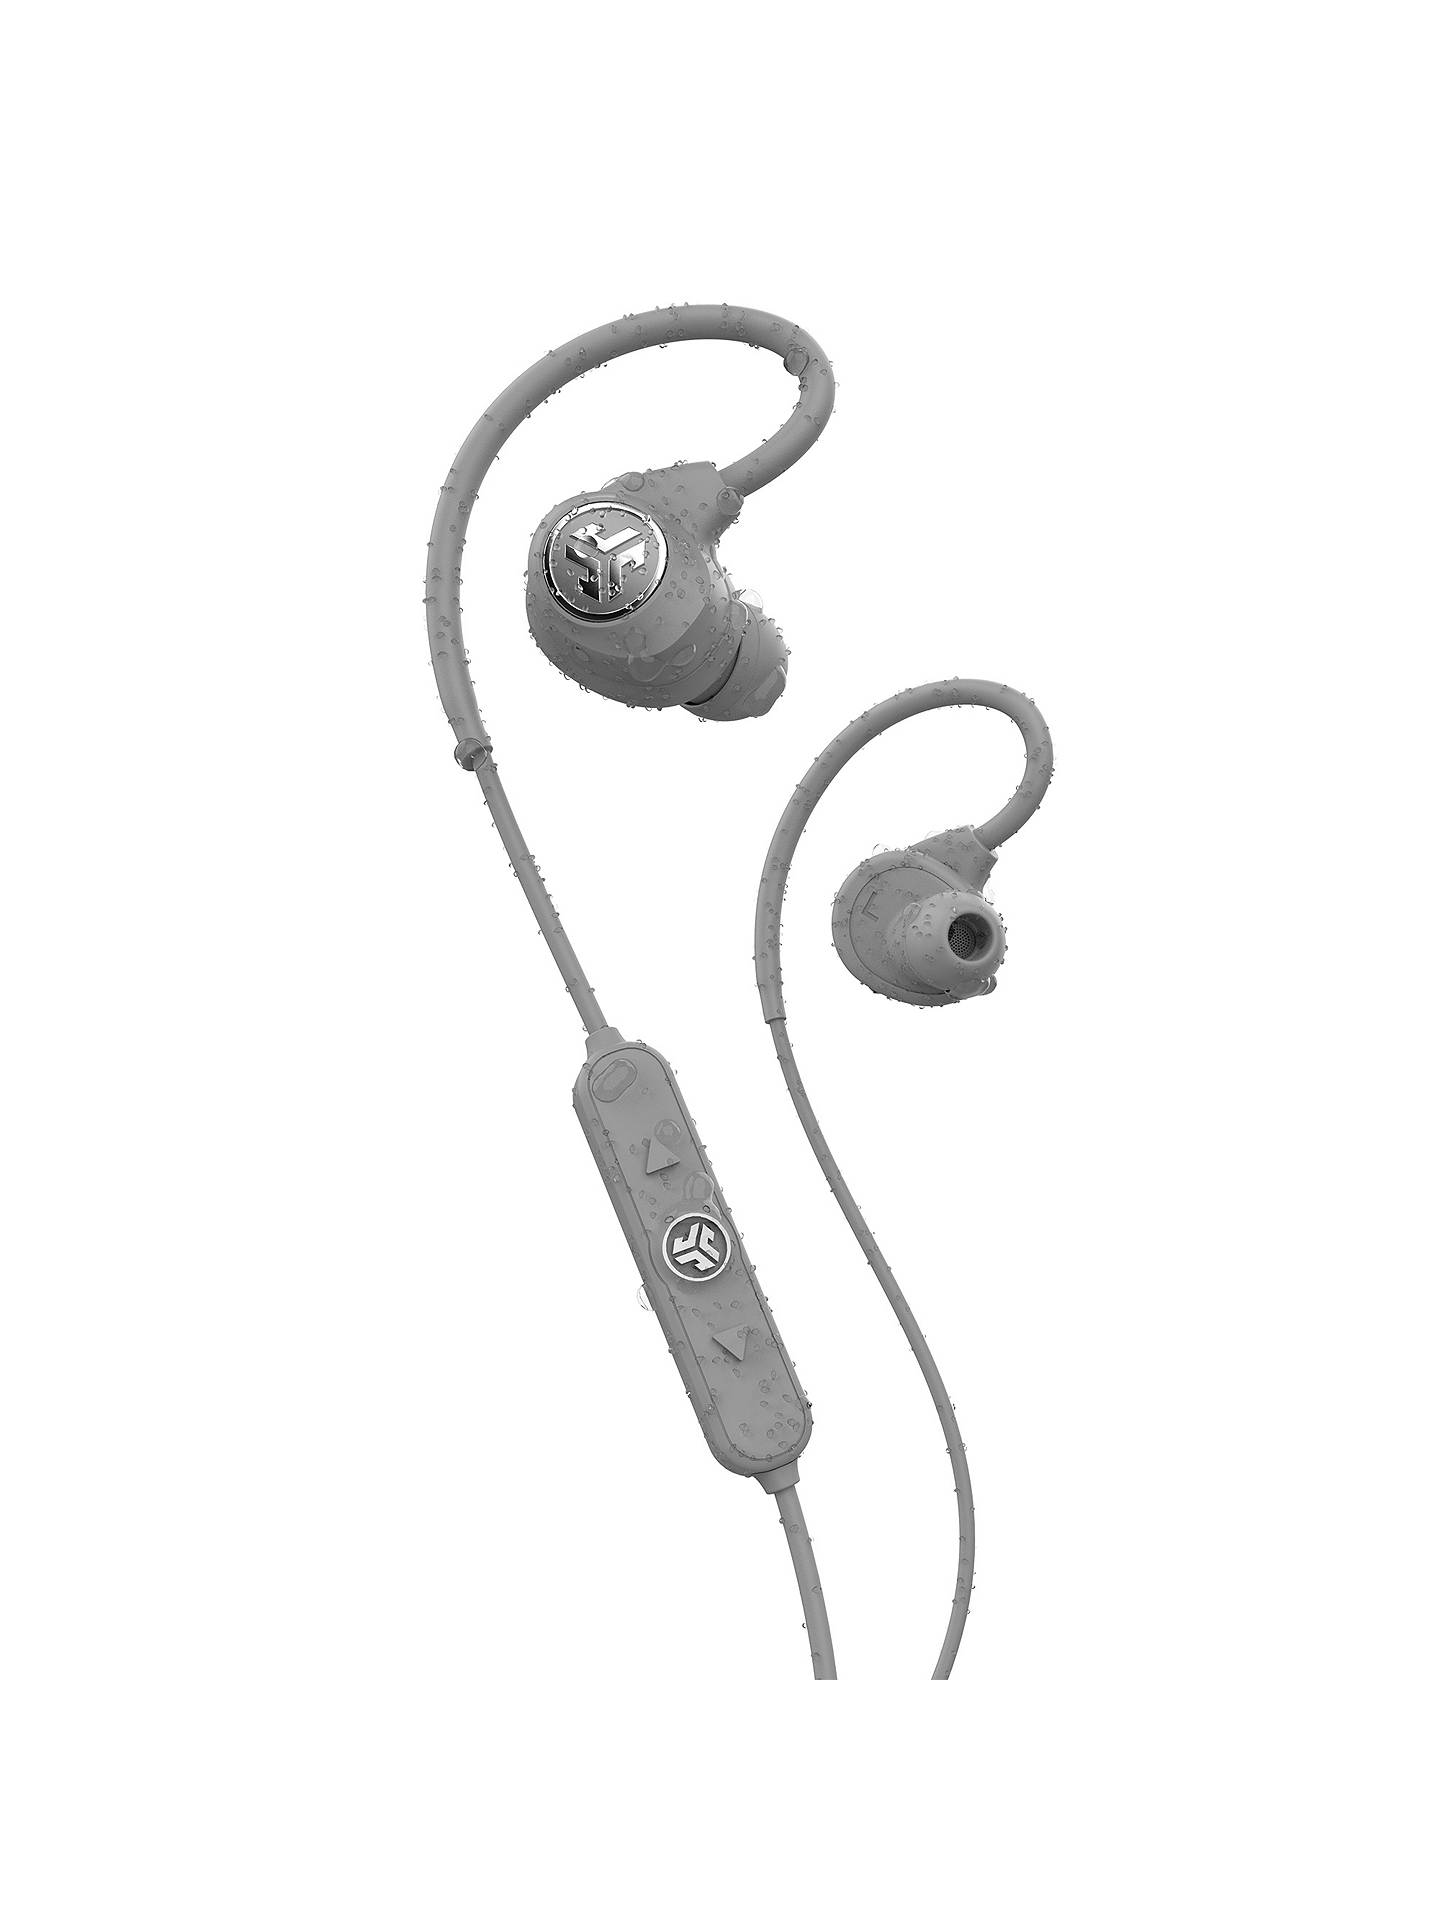 081ab4669a7 ... Buy JLab Audio Epic Sport Sweat & Weather-Resistant Wireless Bluetooth  In-Ear Headphones ...